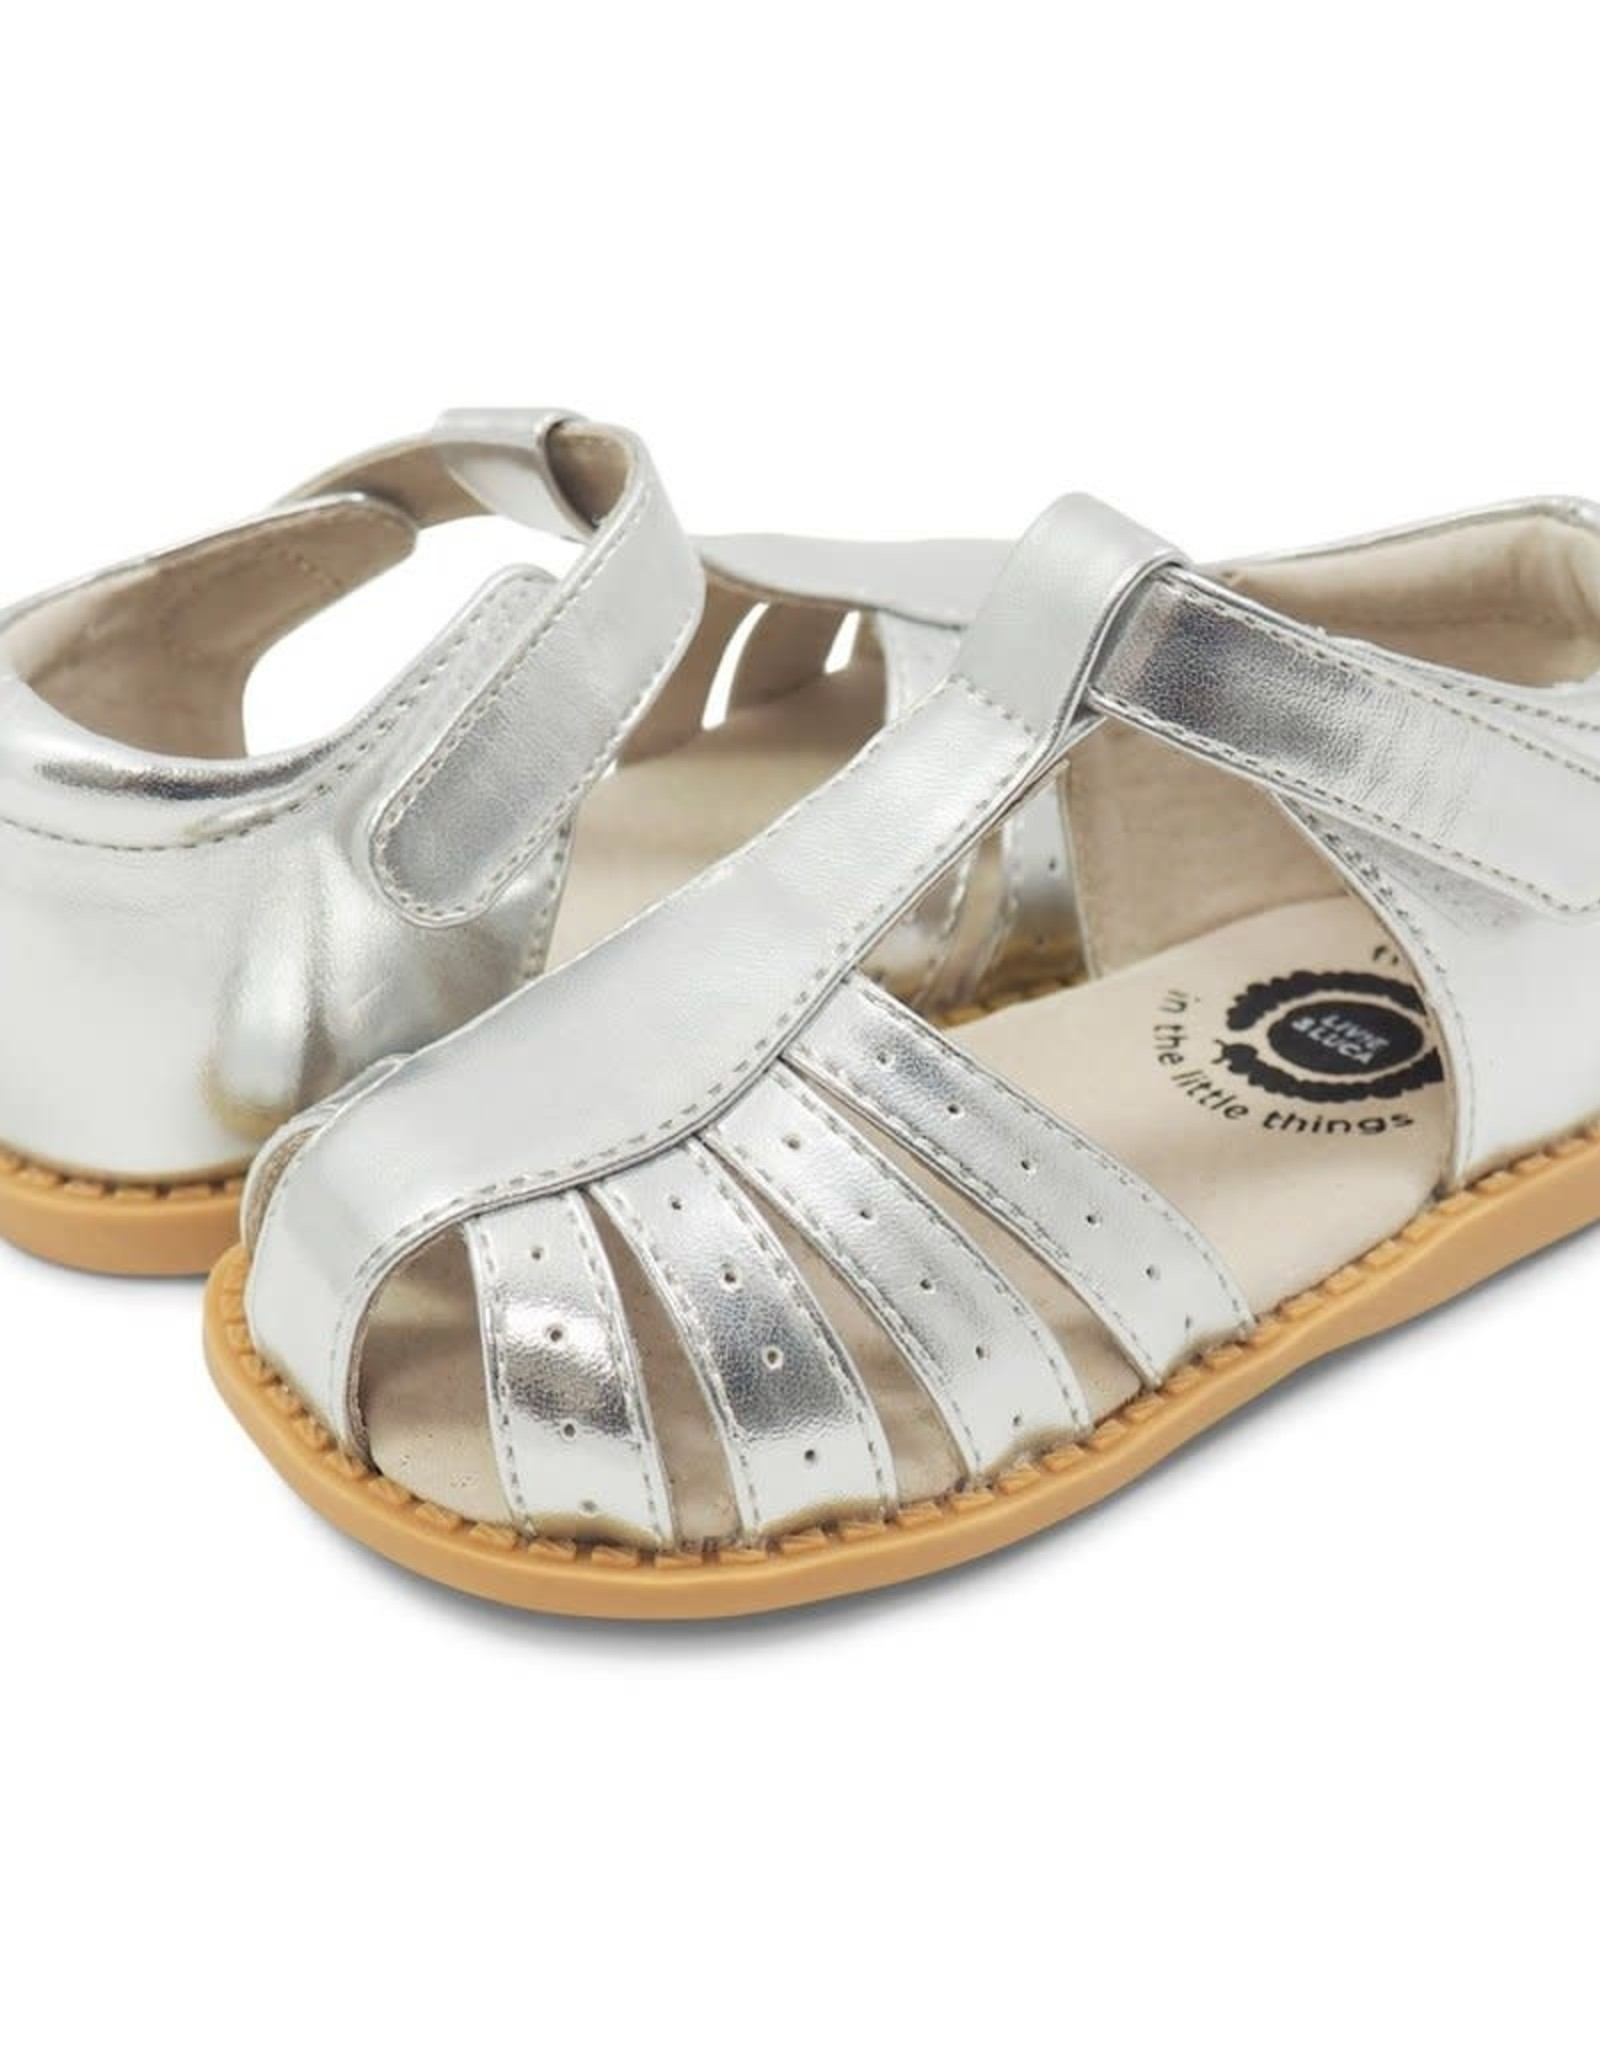 Livie and Luca PAZ Sandal in Platinum